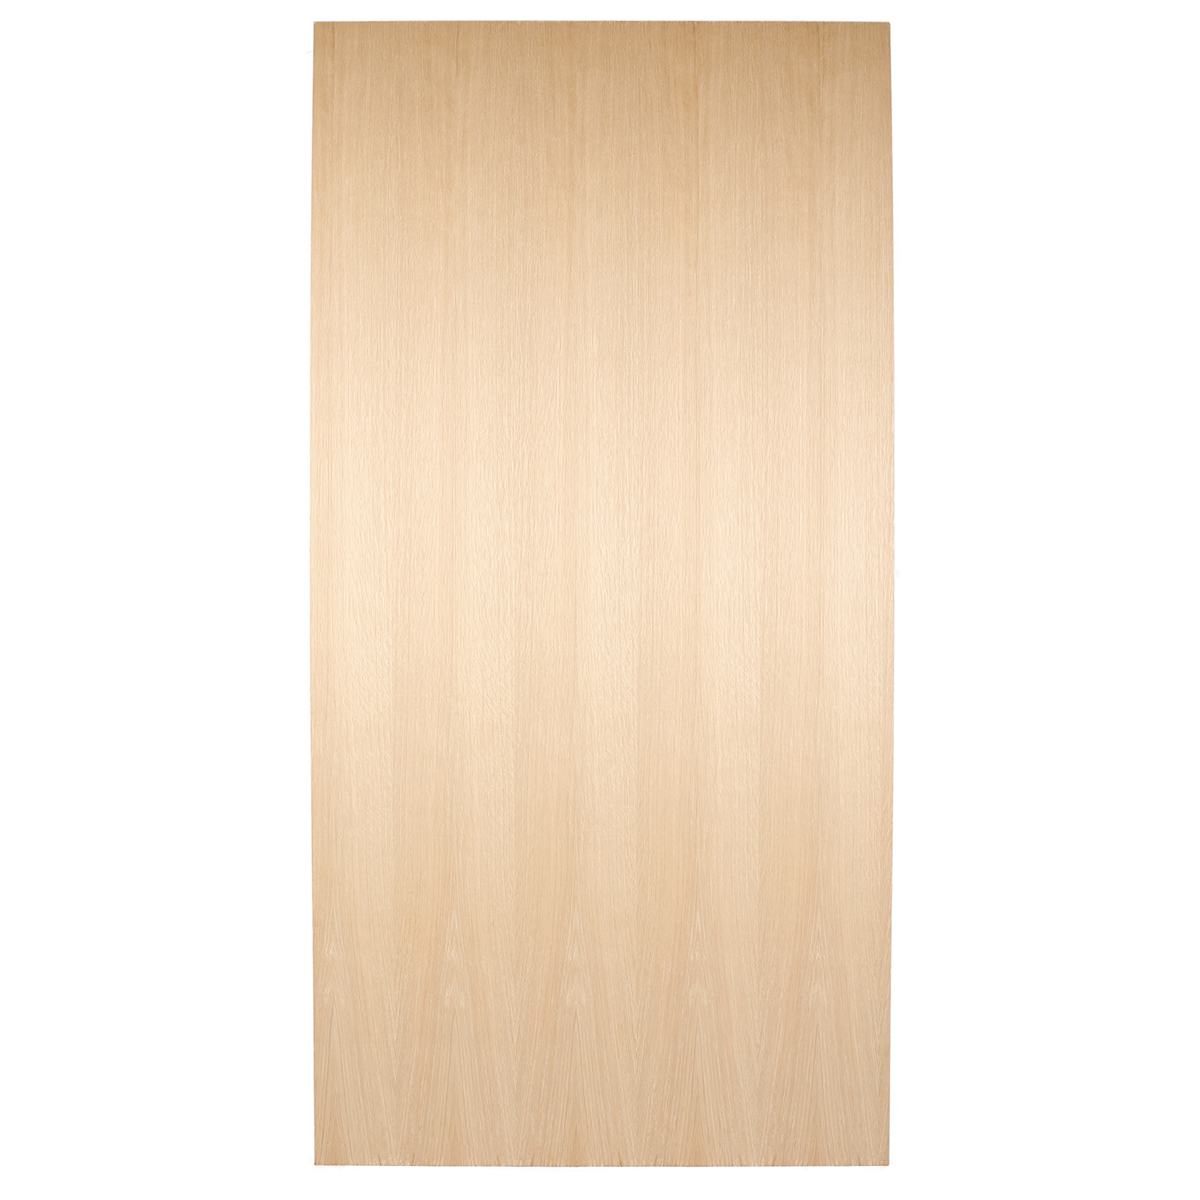 Quot quarter sawn white oak x plywood g s made in usa